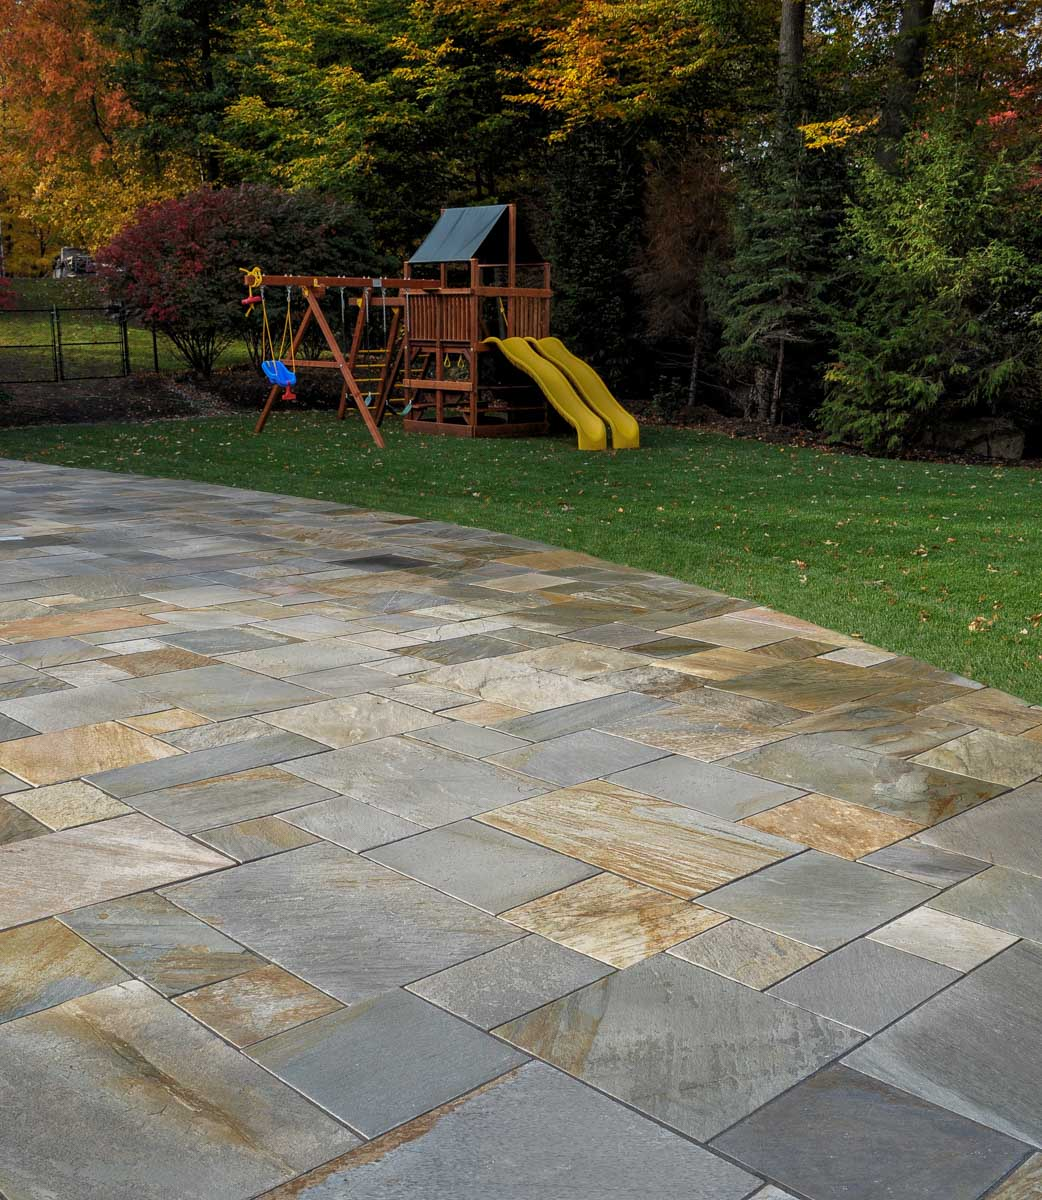 natural stone patio, lawn, swing set